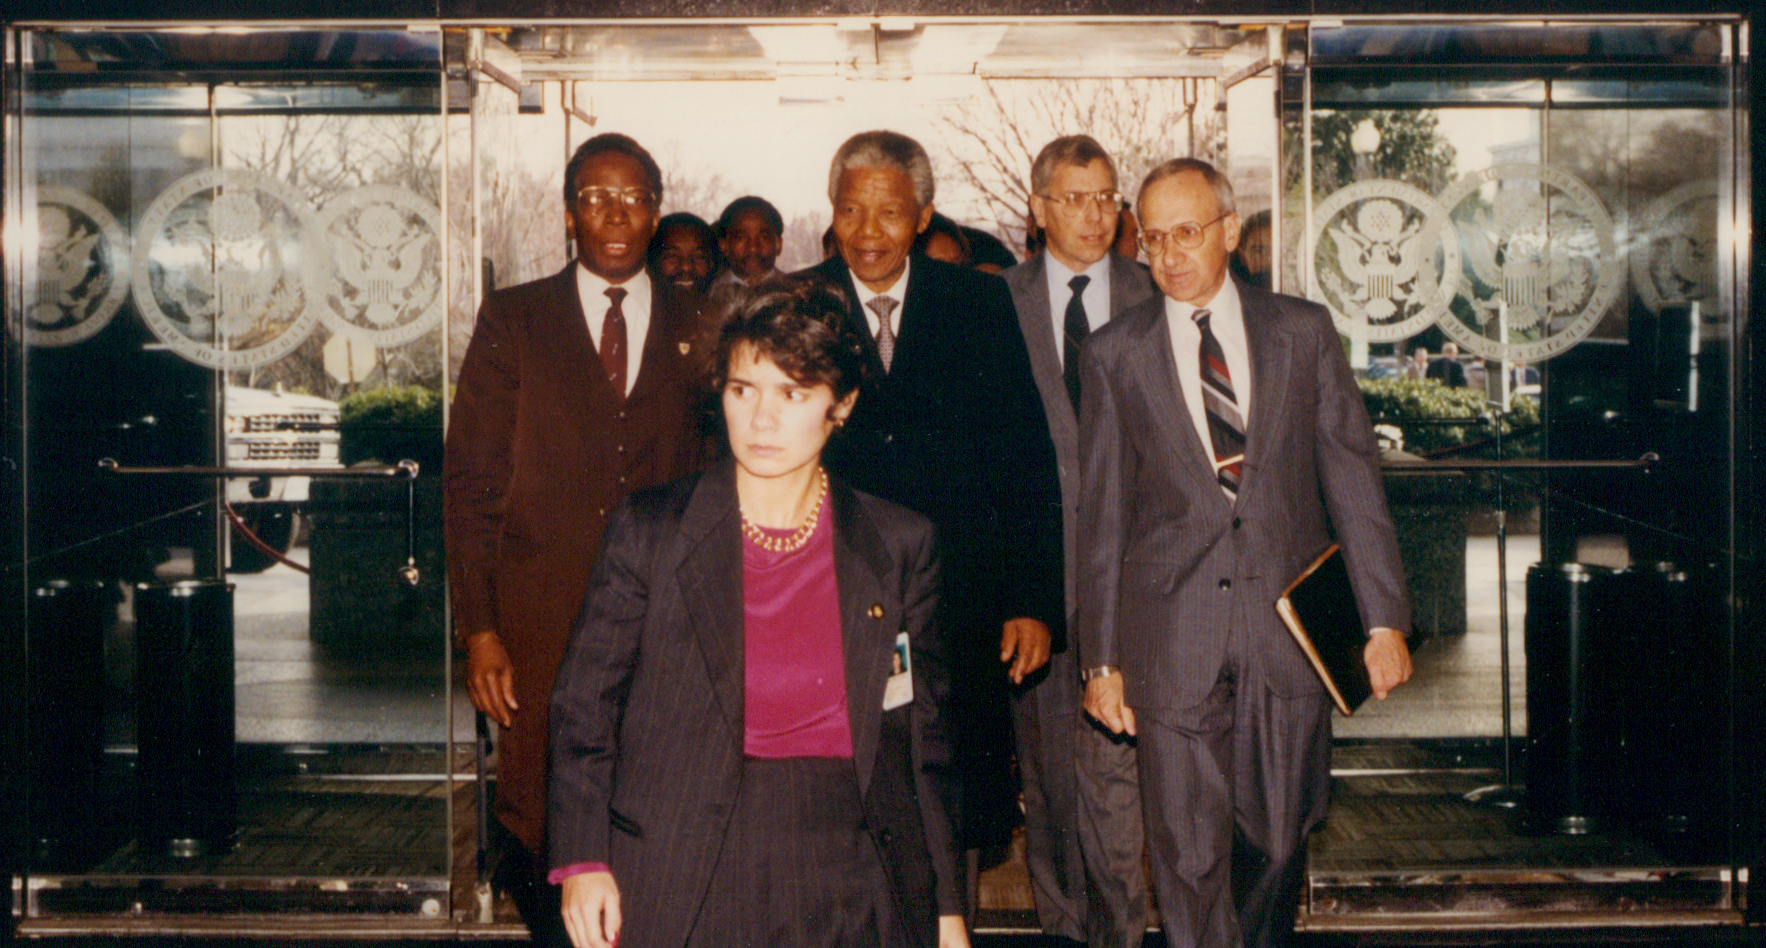 The late South African president Nelson Mandela, recently released after twenty-seven years in prison, enters the State Department with Cohen at the beginning of his first official visit to the United States in March 1990.